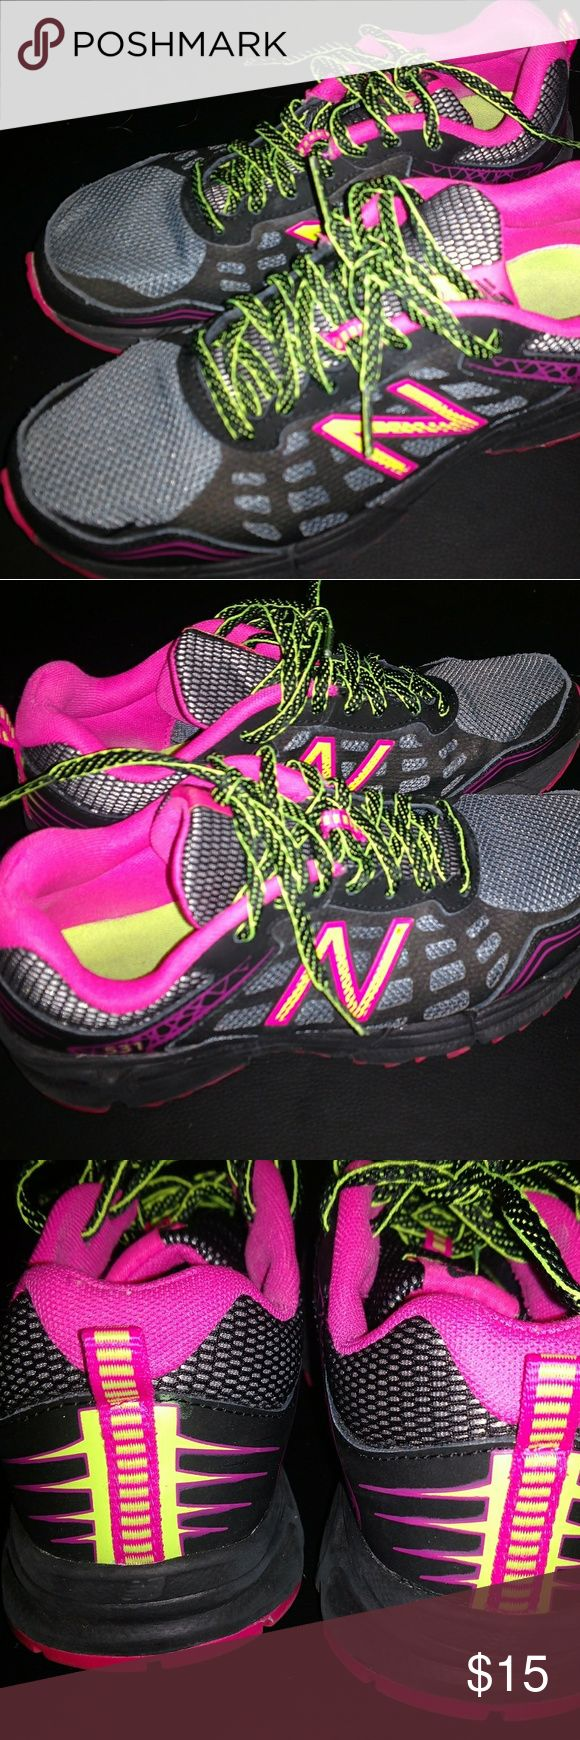 NEW BALANCE TRAIL 531 bright colors Women's lightly used New Balance 531 size 6.5.  Nice bright colors! New Balance Shoes Athletic Shoes